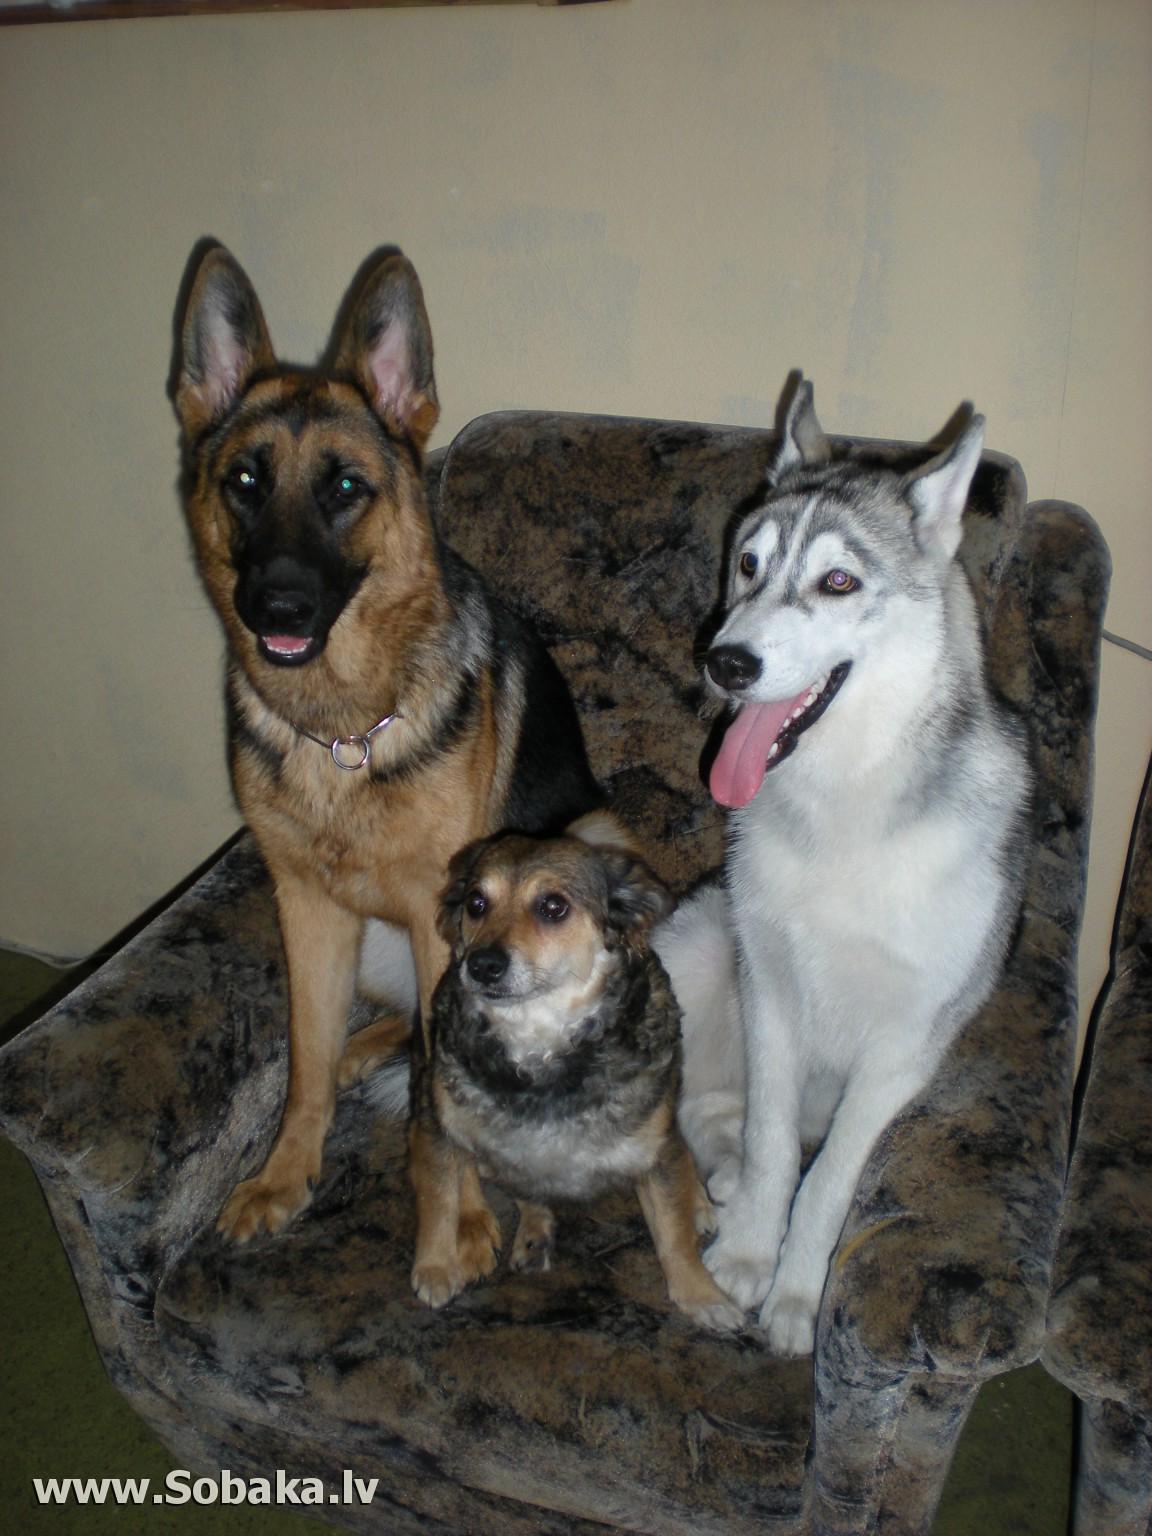 Blue shepherds can be born in a litter with traditional colored puppies